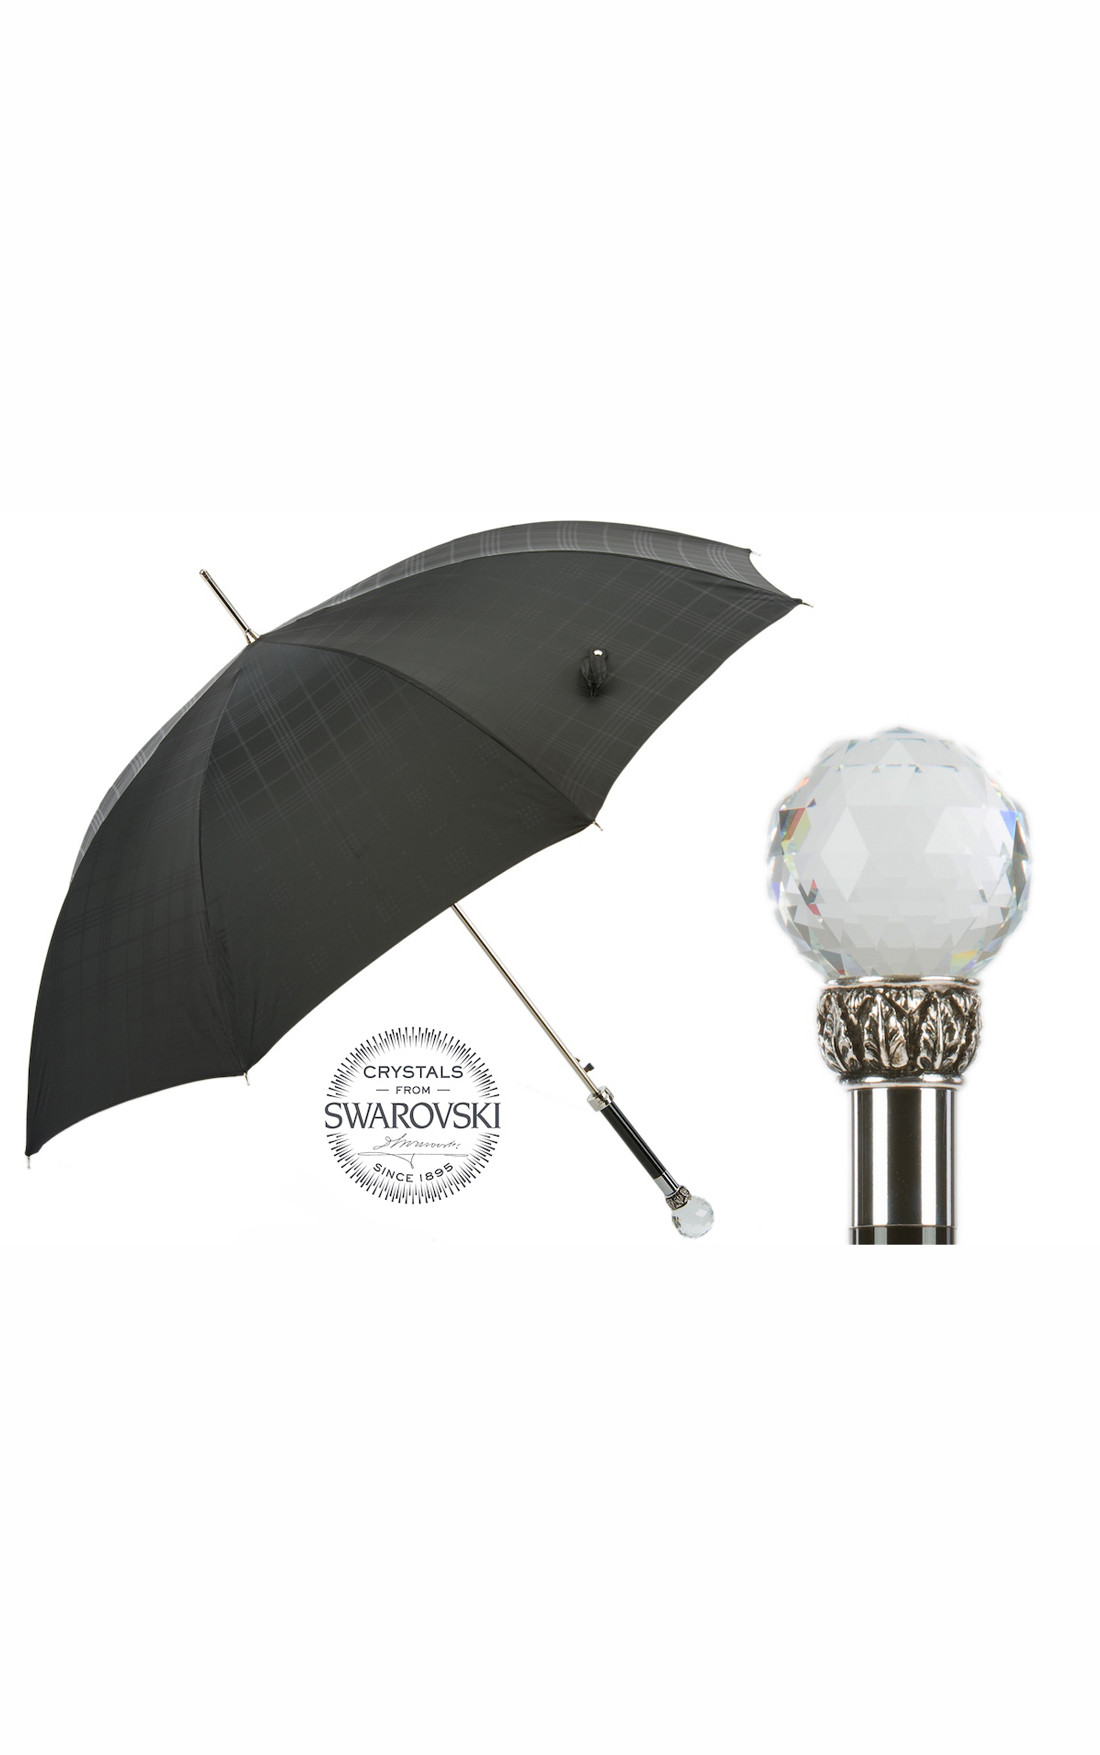 Pasotti - Black Check Umbrella with Large Swarovski Crystal Handle (478-6434/19-W01-NERO)